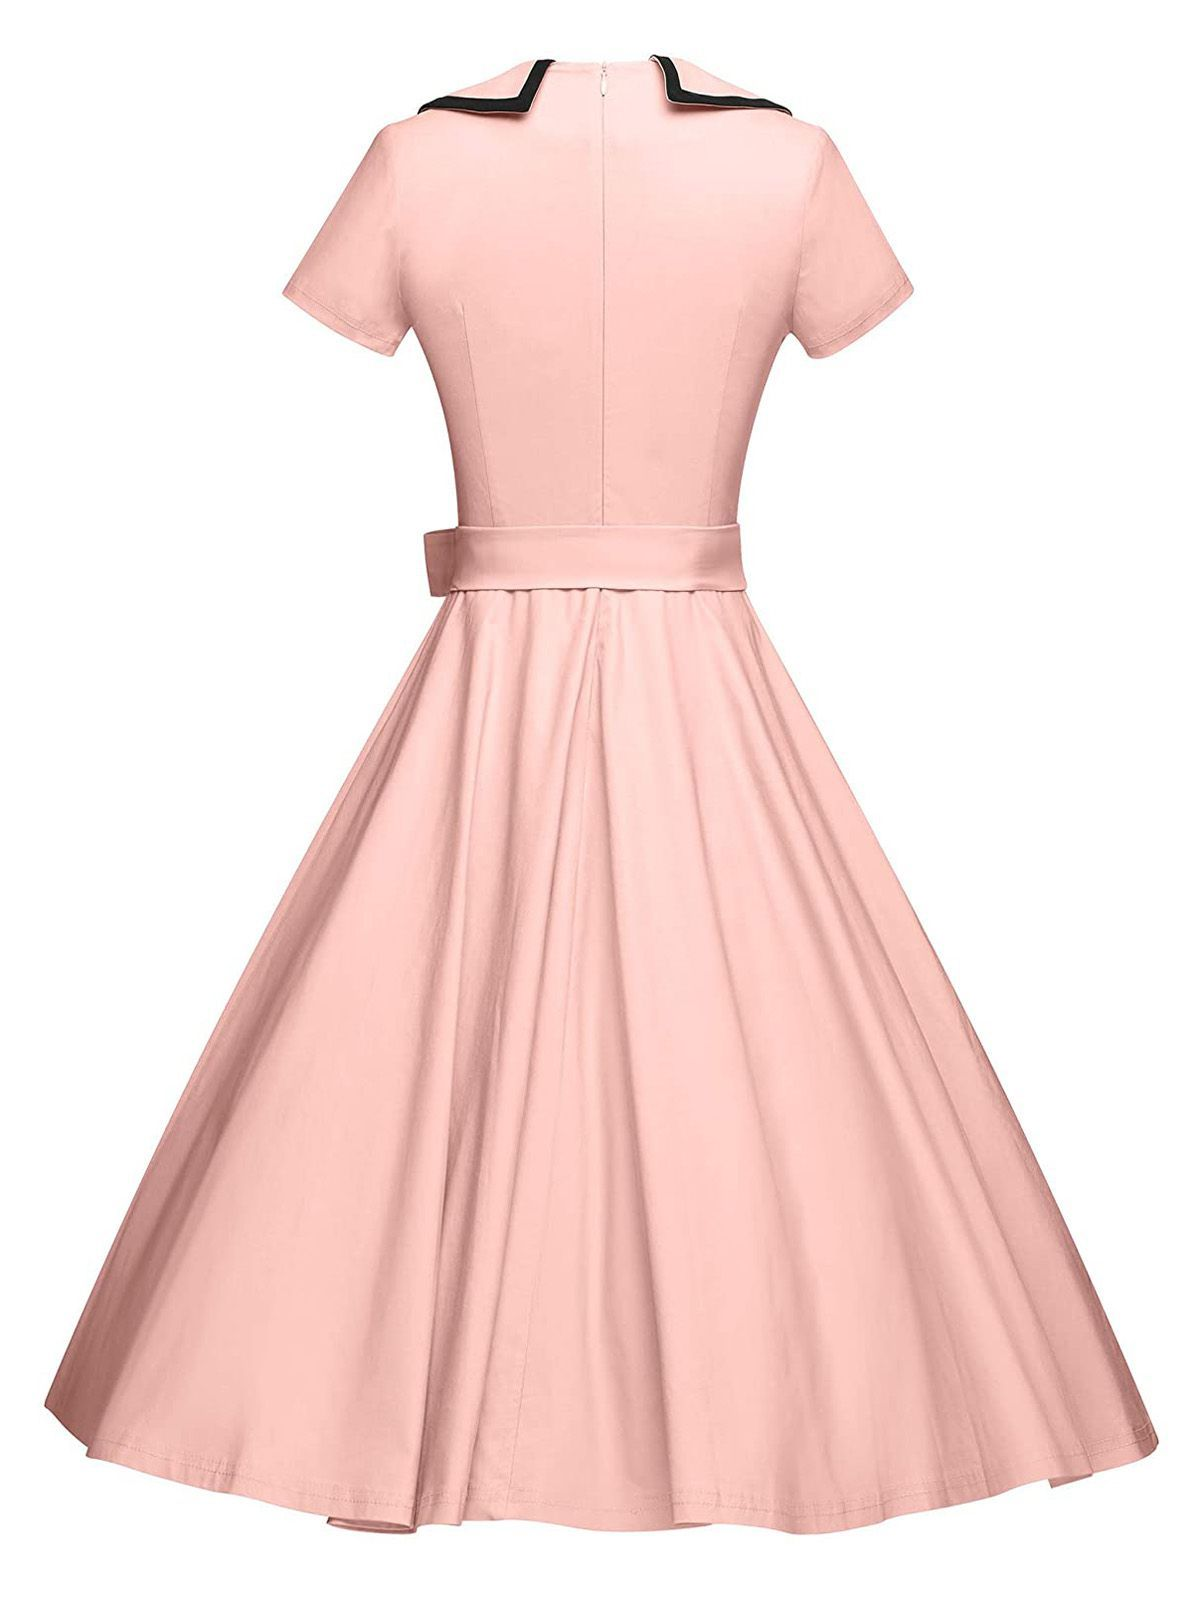 Pink 1950s Button Bow Swing Dress